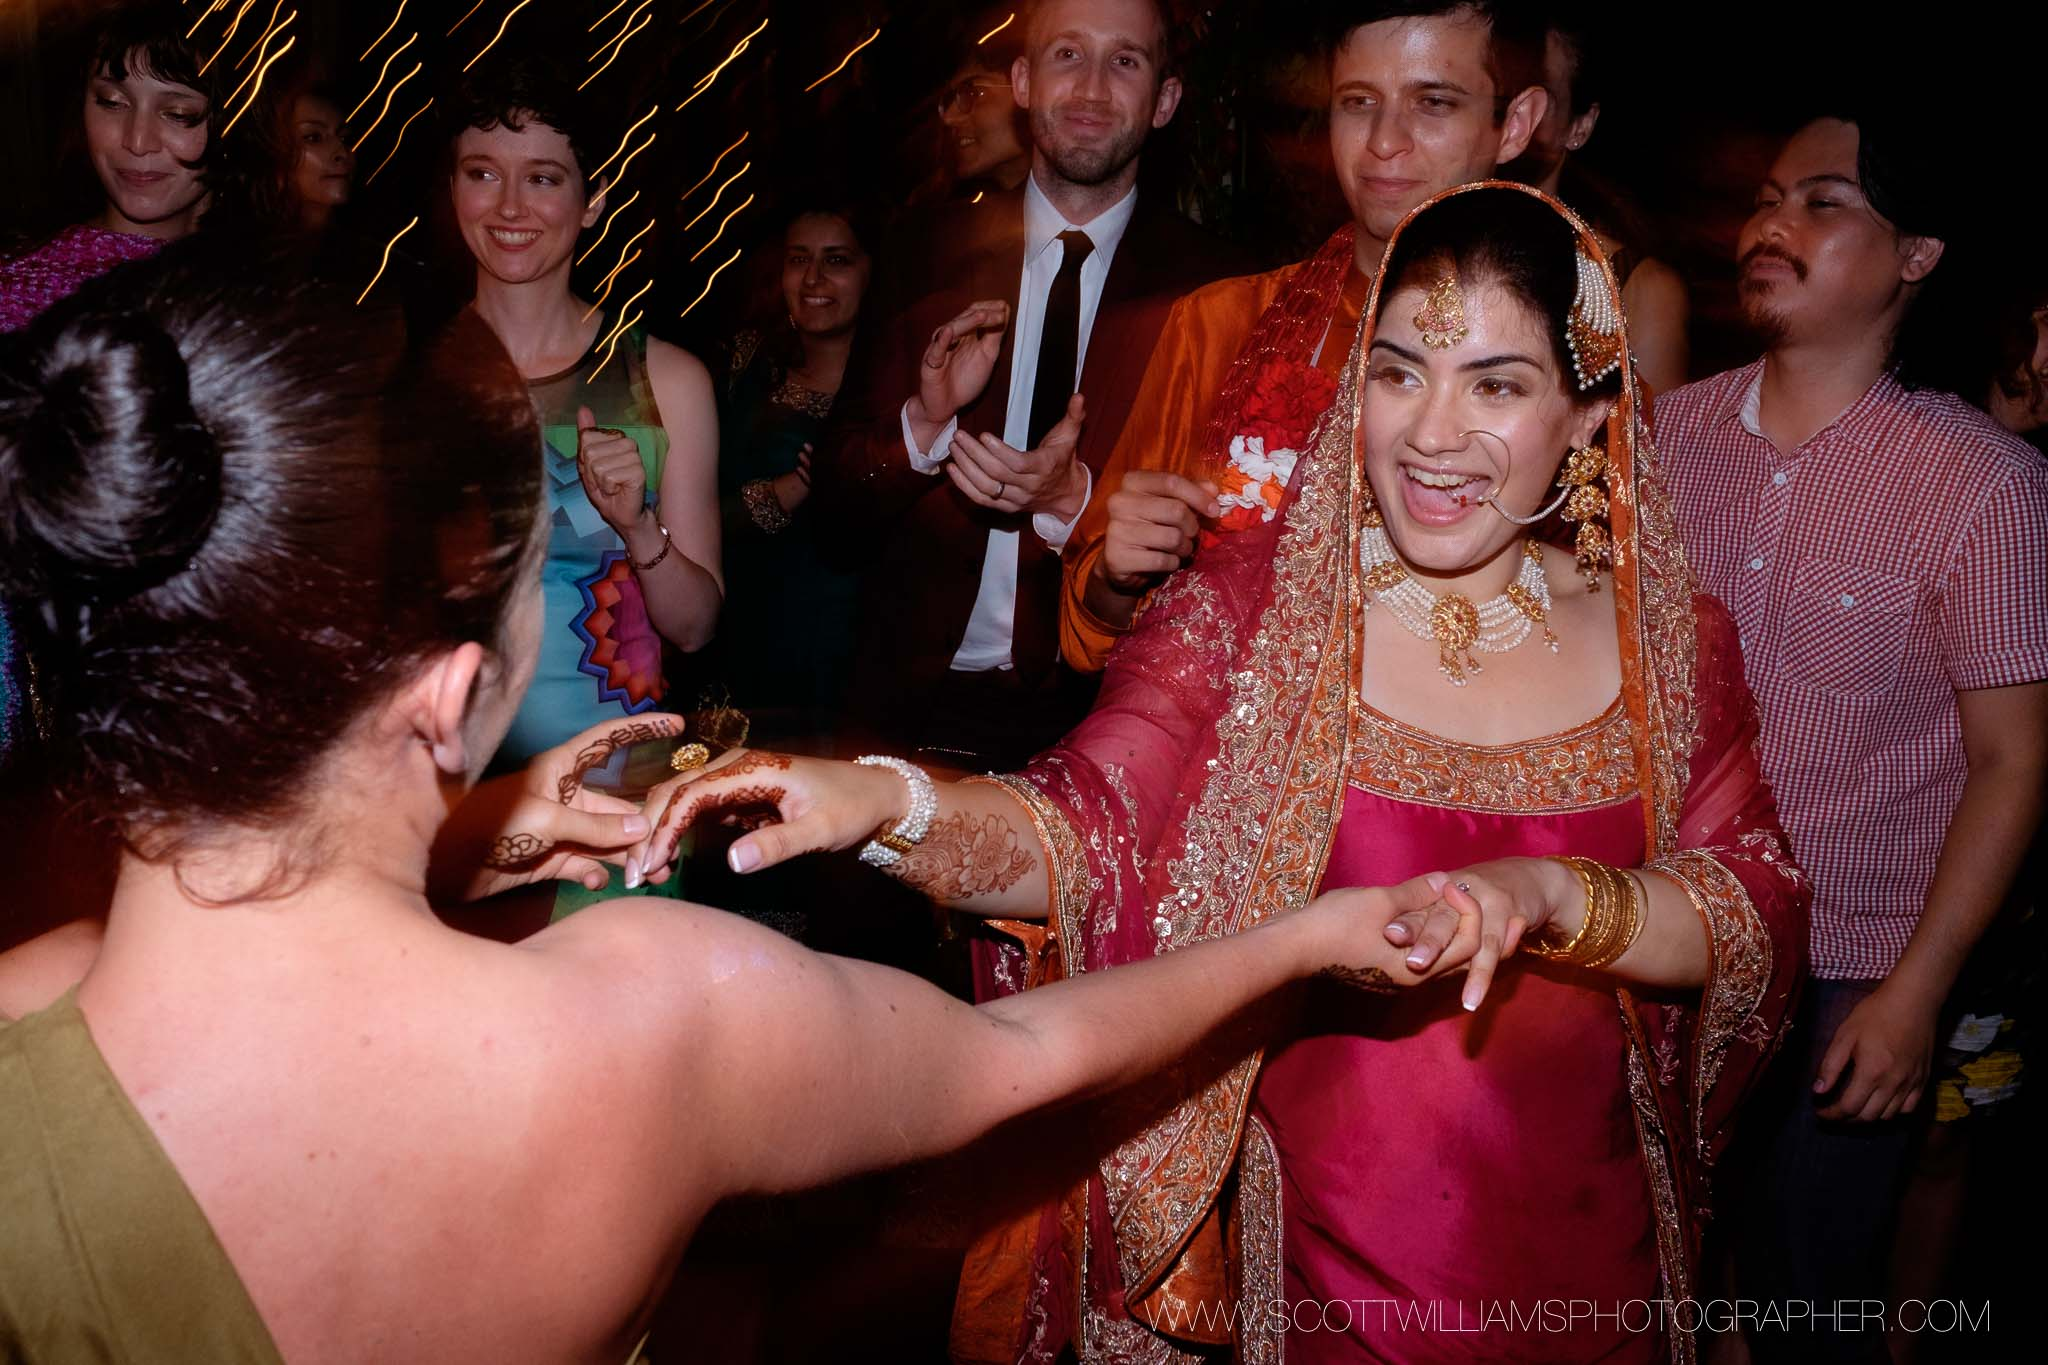 The bride dances with guests during the wedding reception of her backyard wedding in Burlington, Ontario.